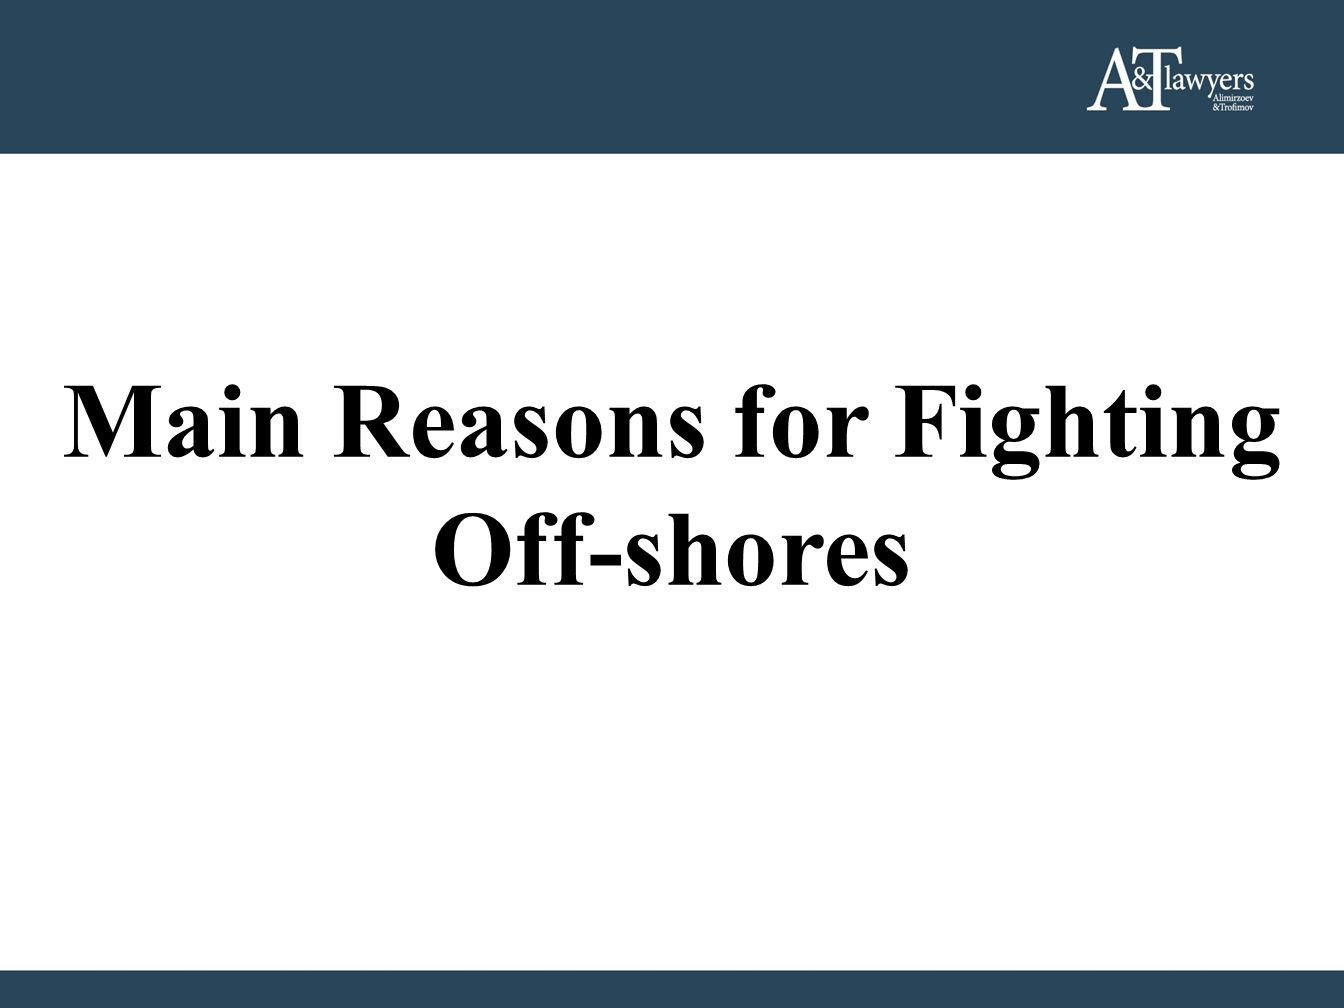 Main Reasons for Fighting Off-shores